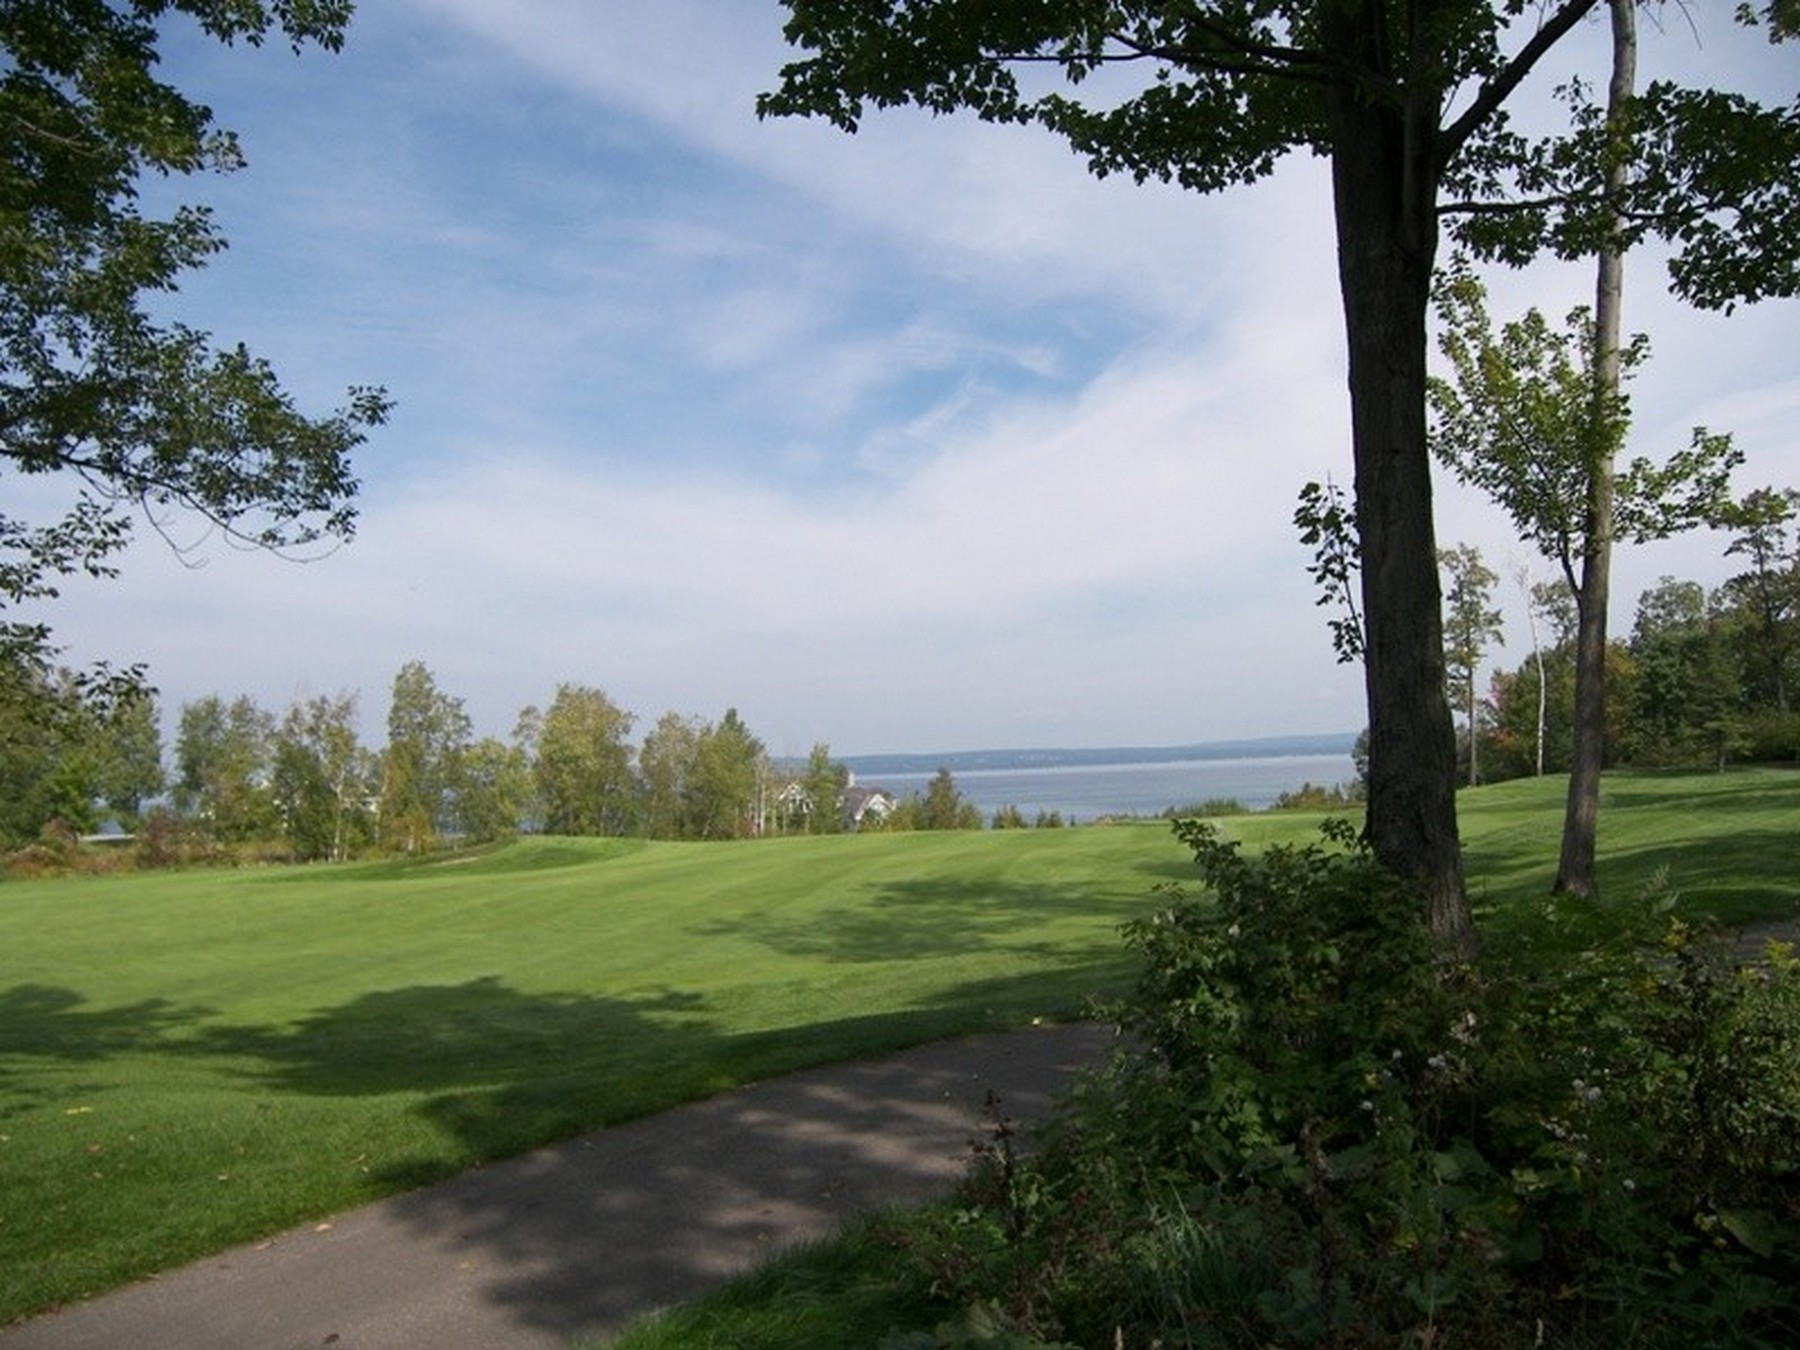 Land for Sale at 6193 Coastal Cliffs Court 6193 Coastal Cliffs Court Lot 14 Bay Harbor, Michigan, 49770 United States